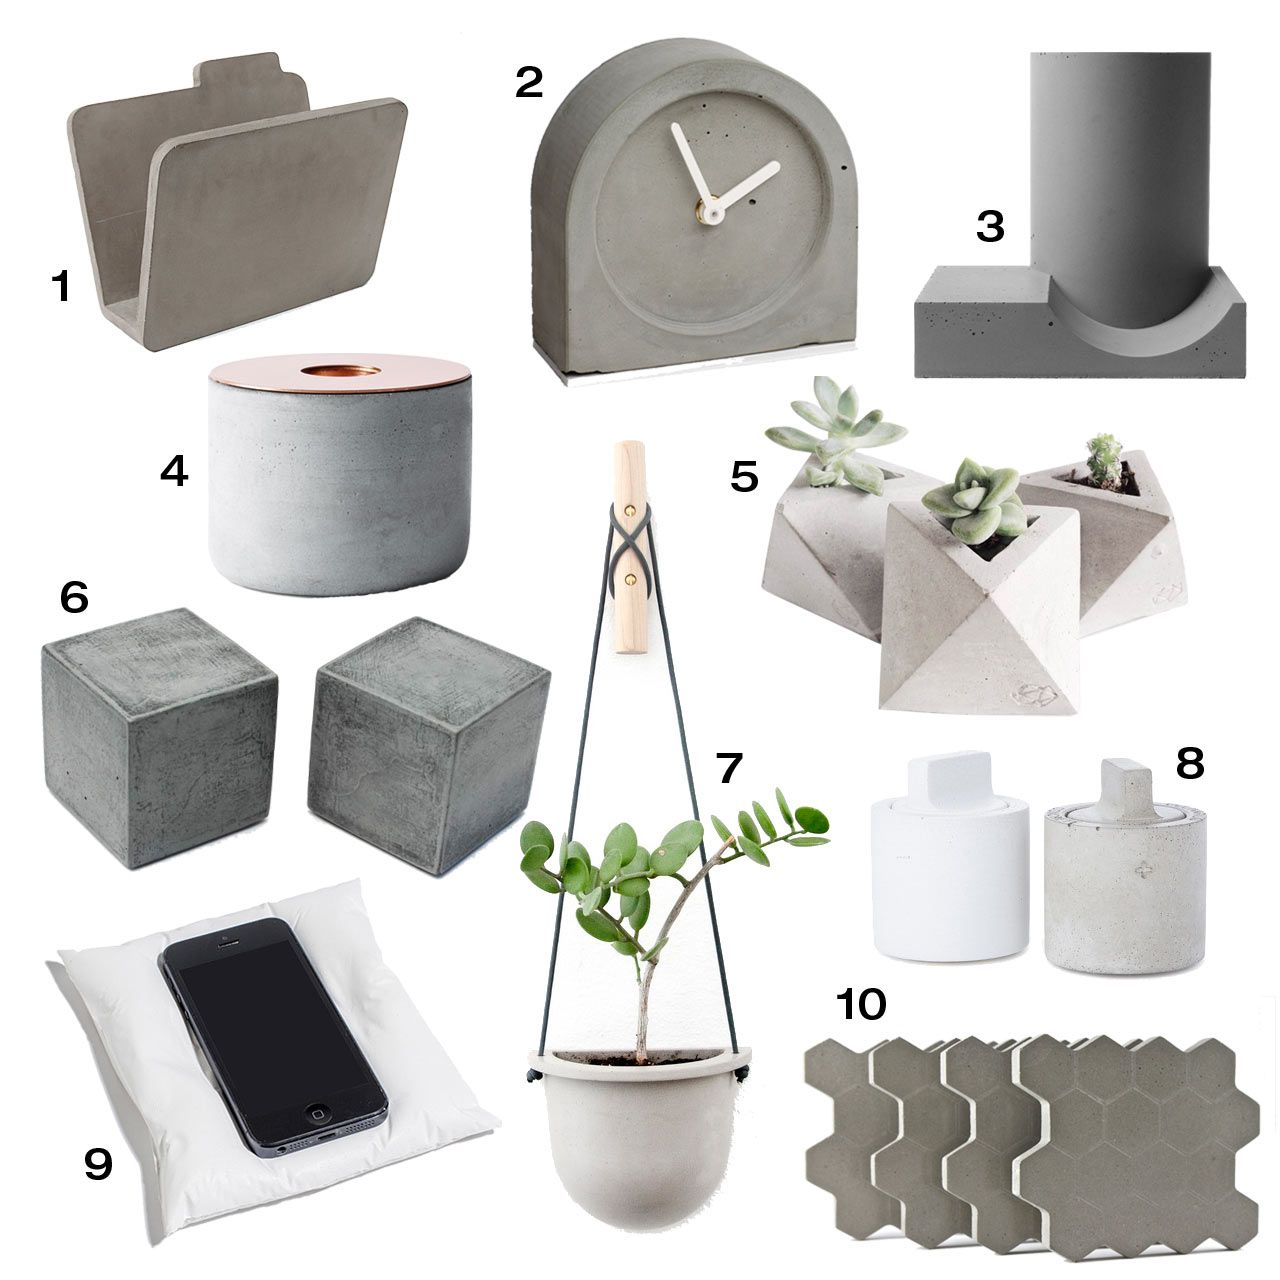 10 Modern Concrete Accessories Cool desk accessories